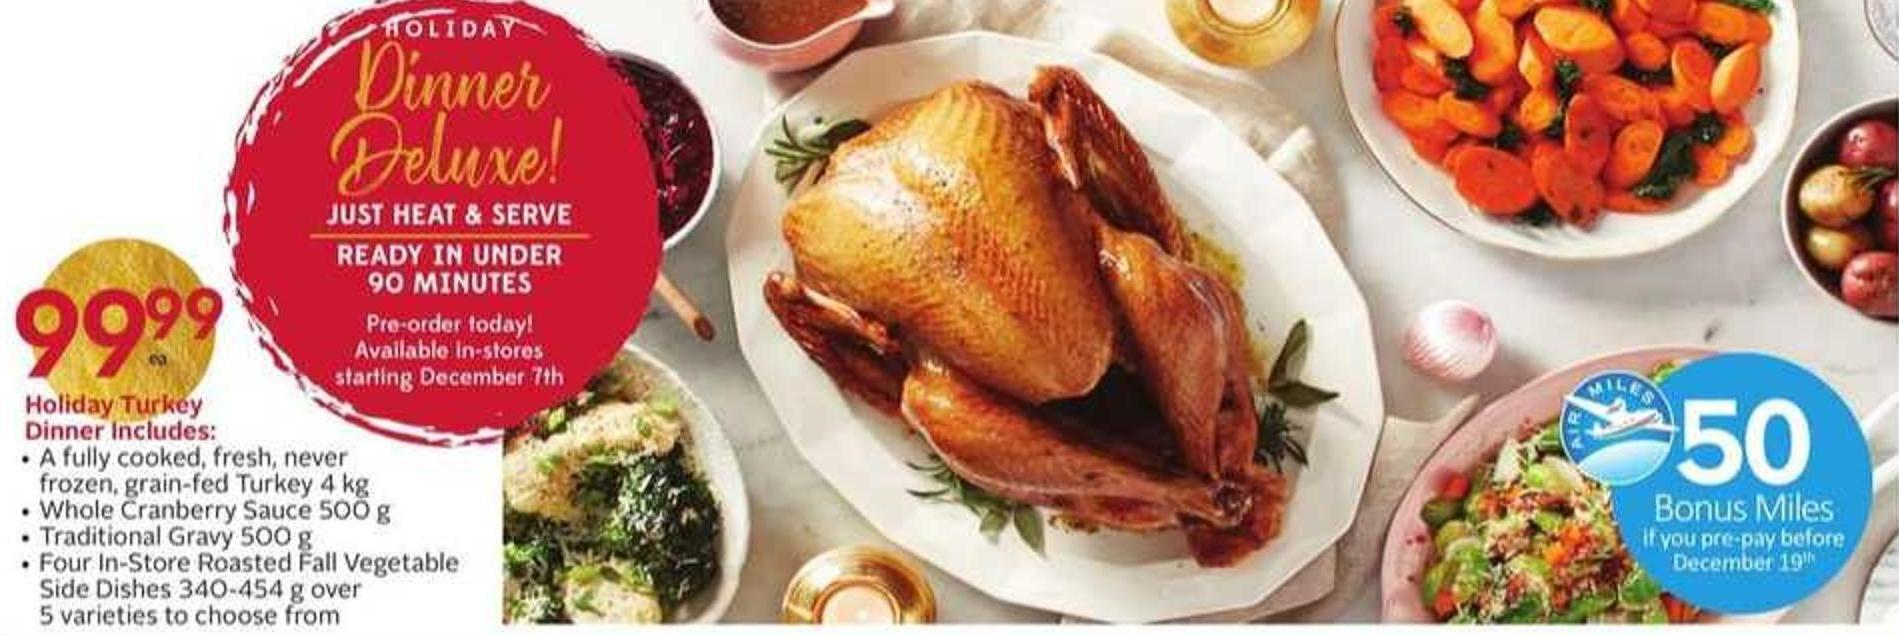 Holiday Turkey Dinner - 50 Air Miles Bonus Miles